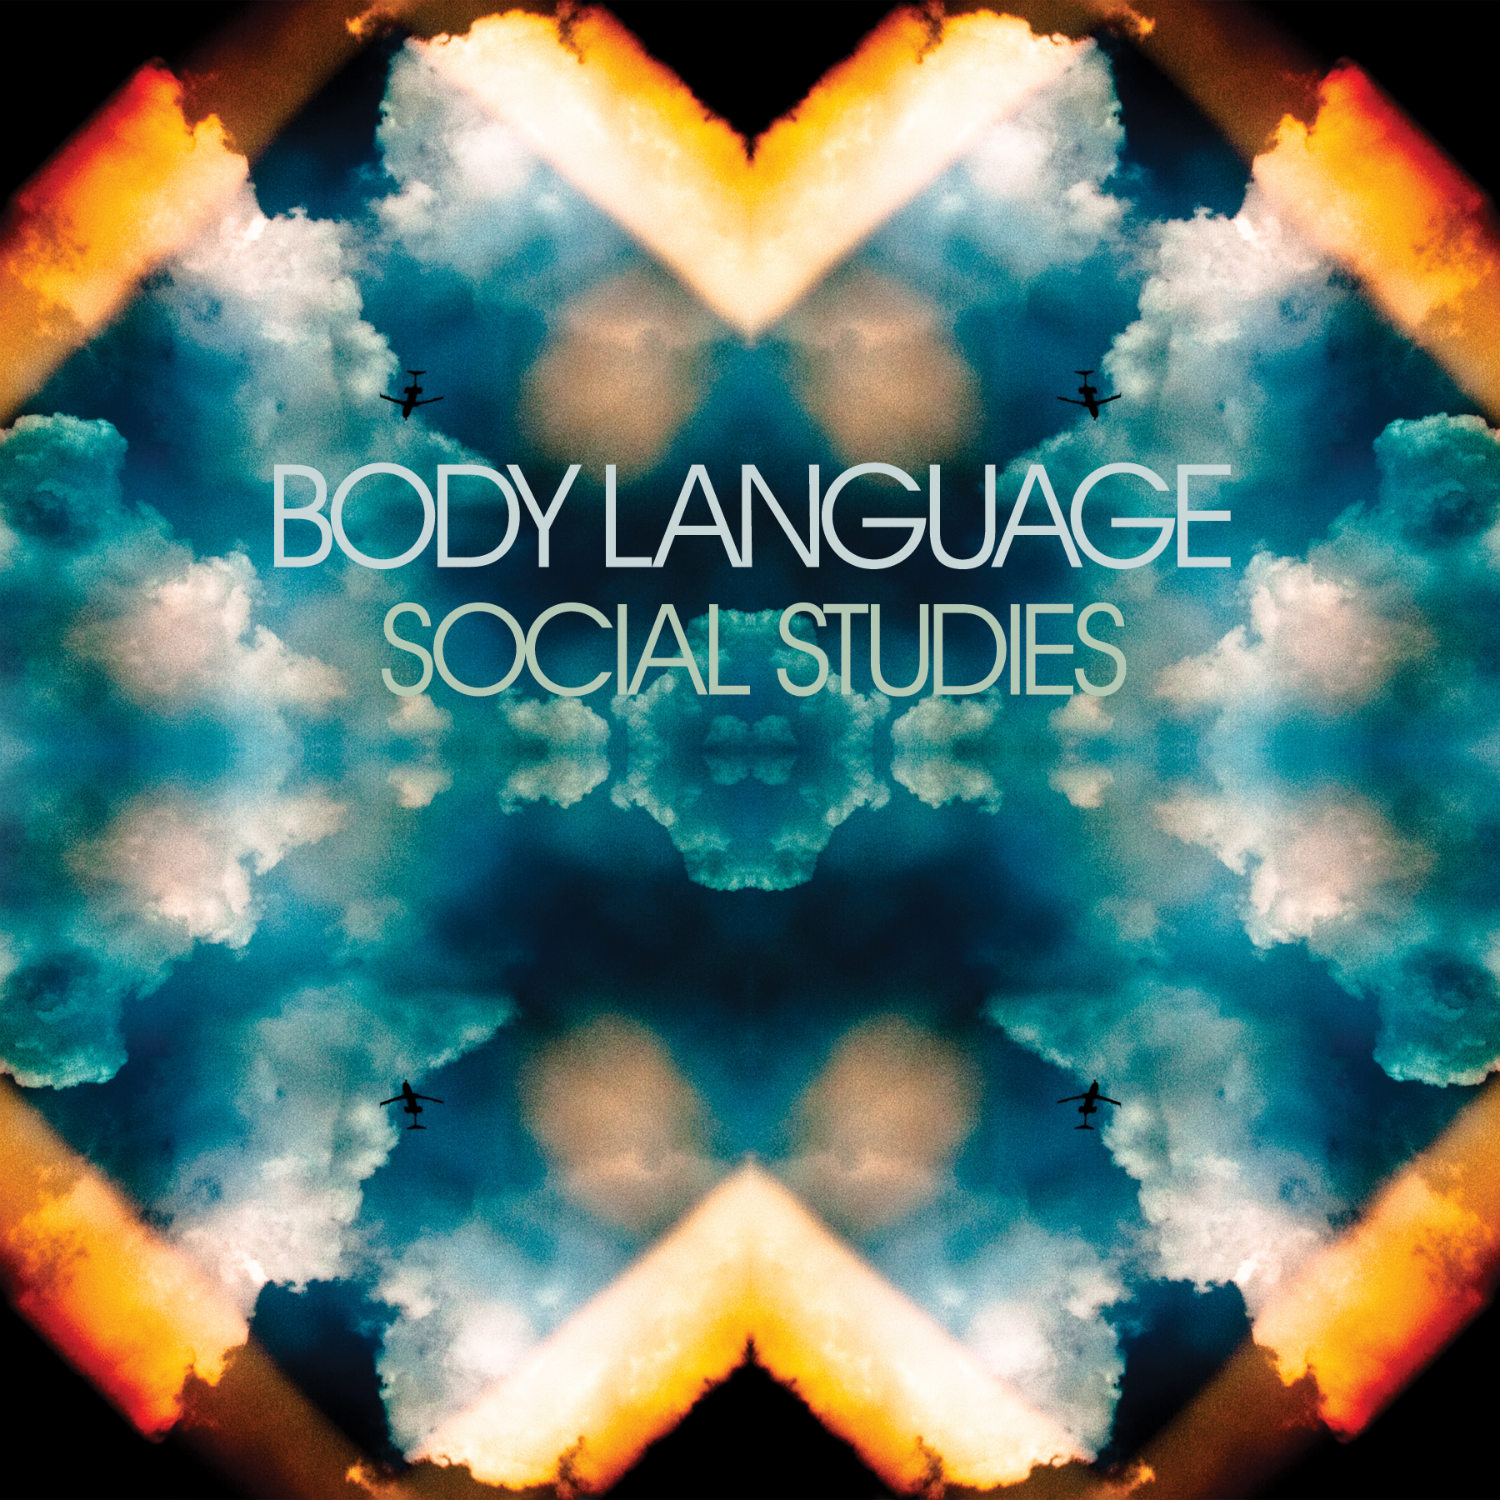 Body Language - Social Studies